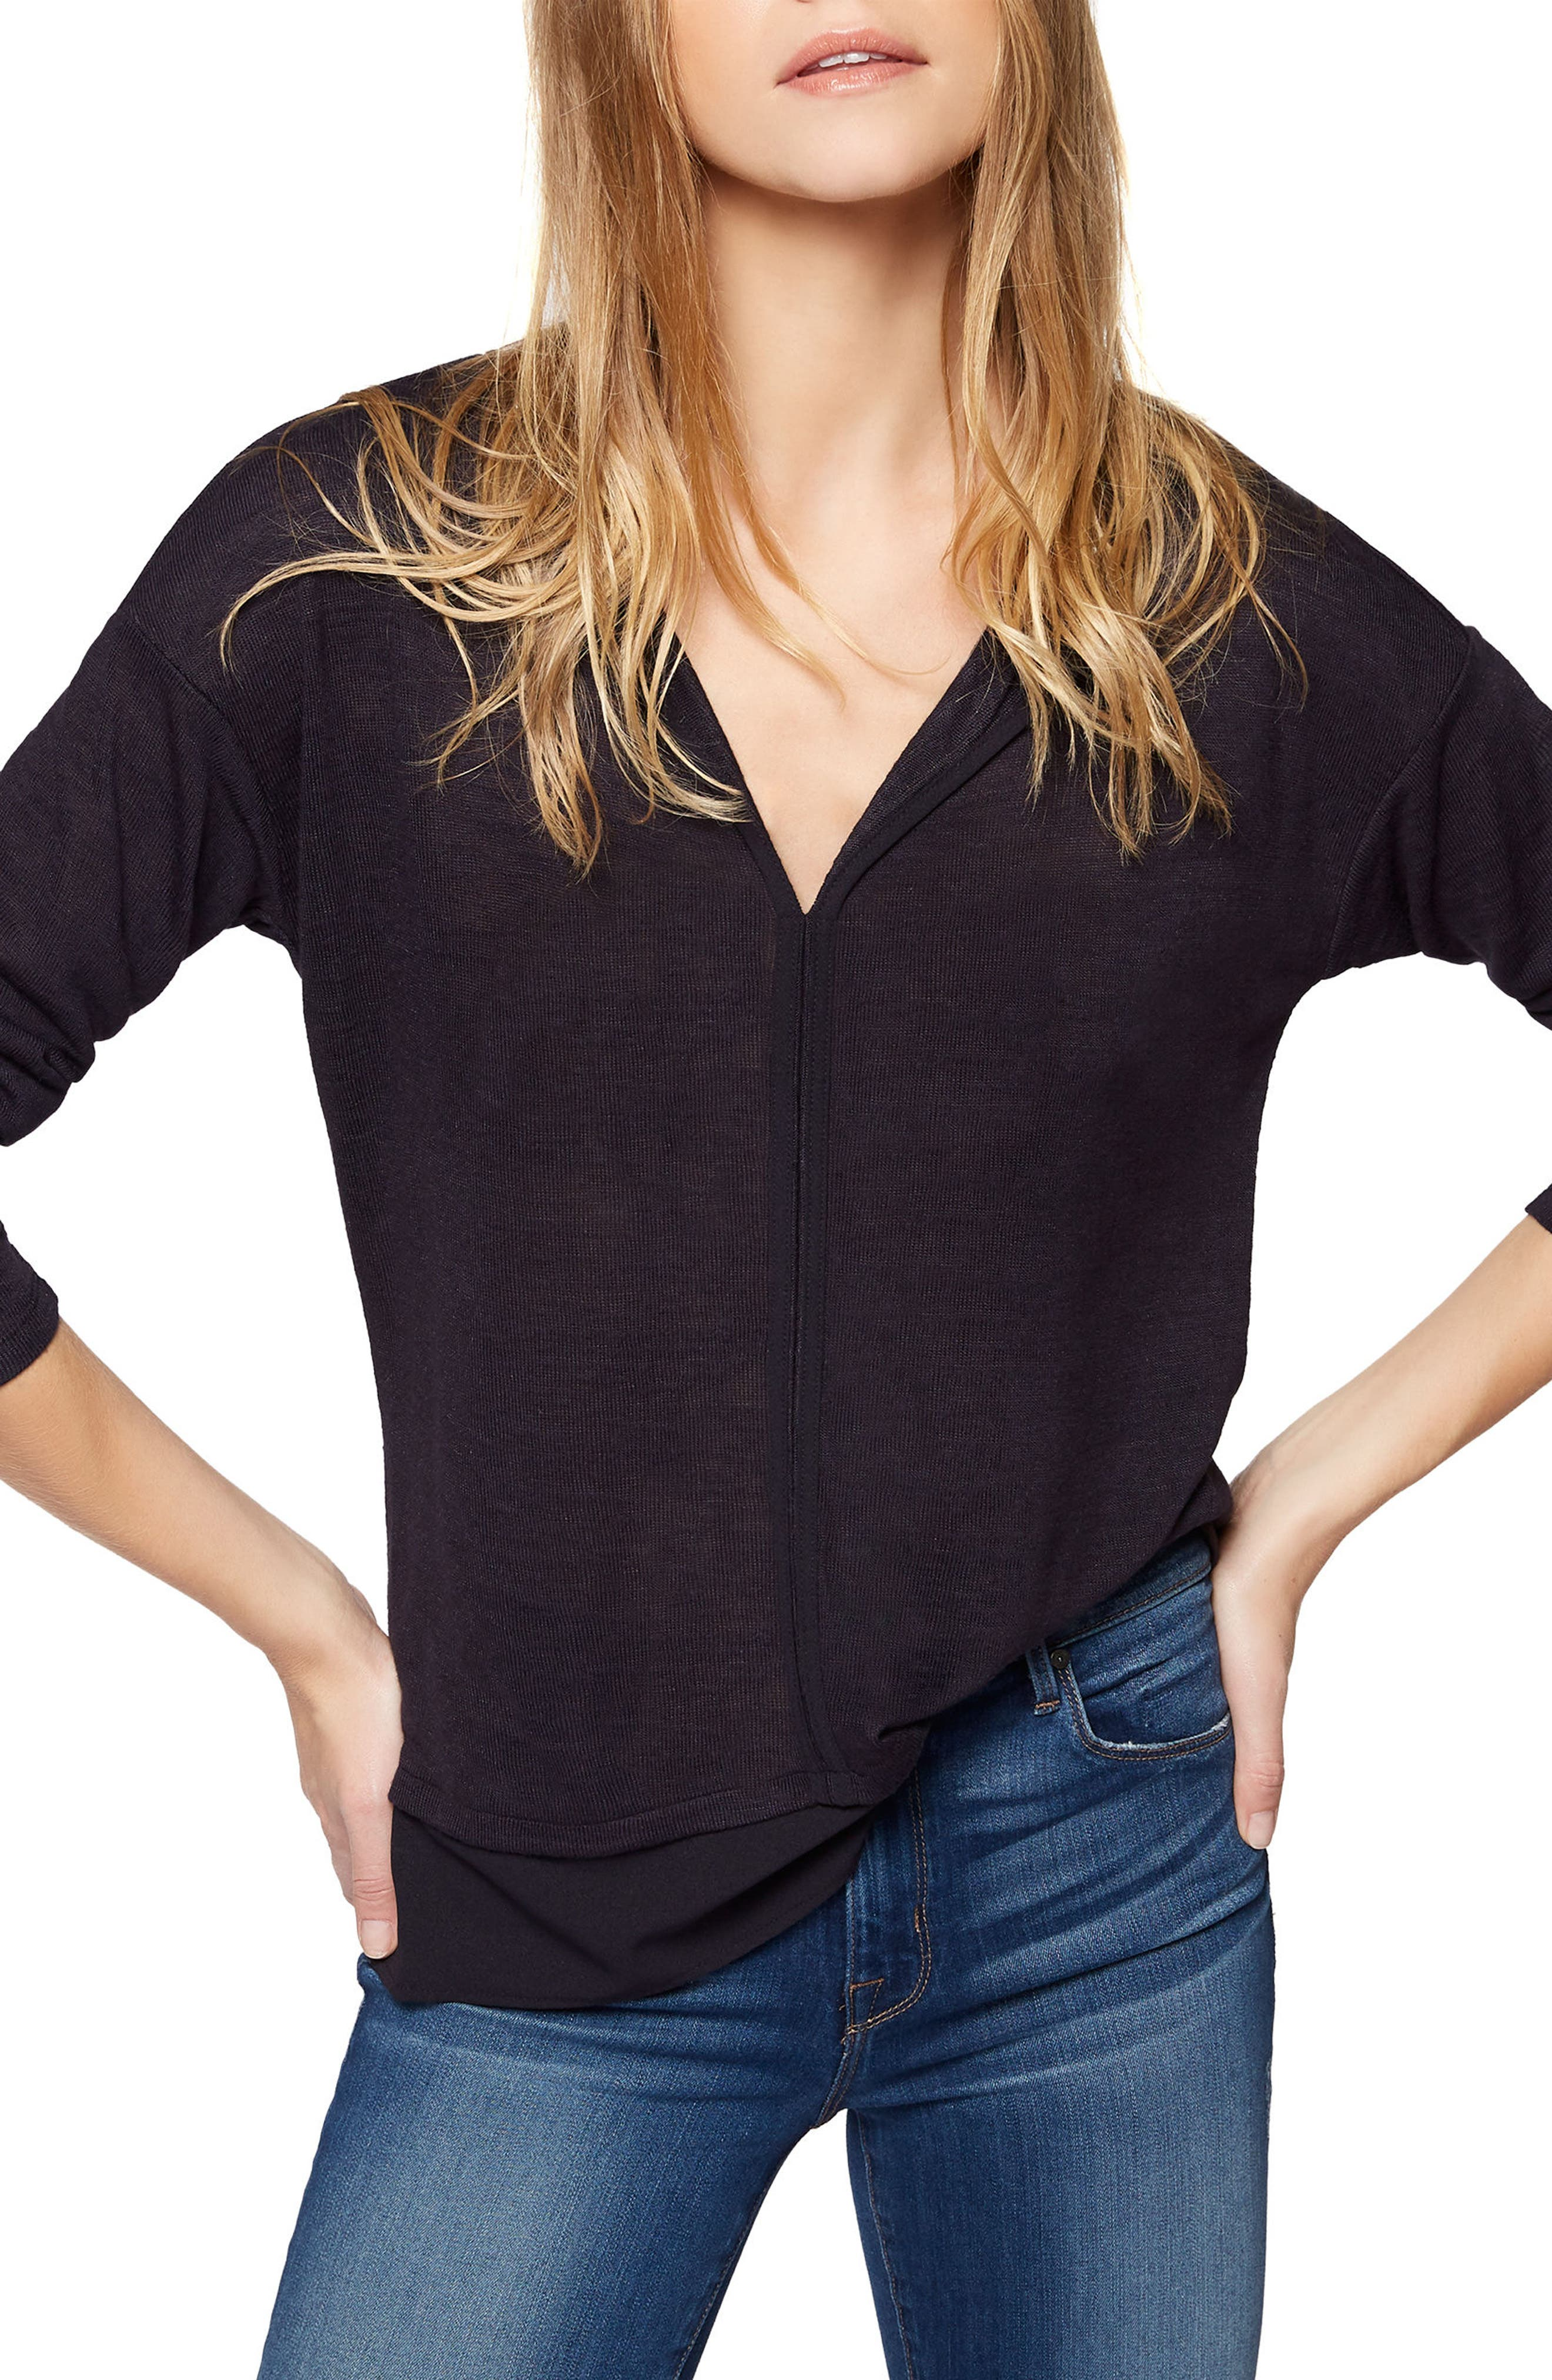 Main Image - Sanctuary 'Hanna' Split Neck Knit Top (Regular & Petite)